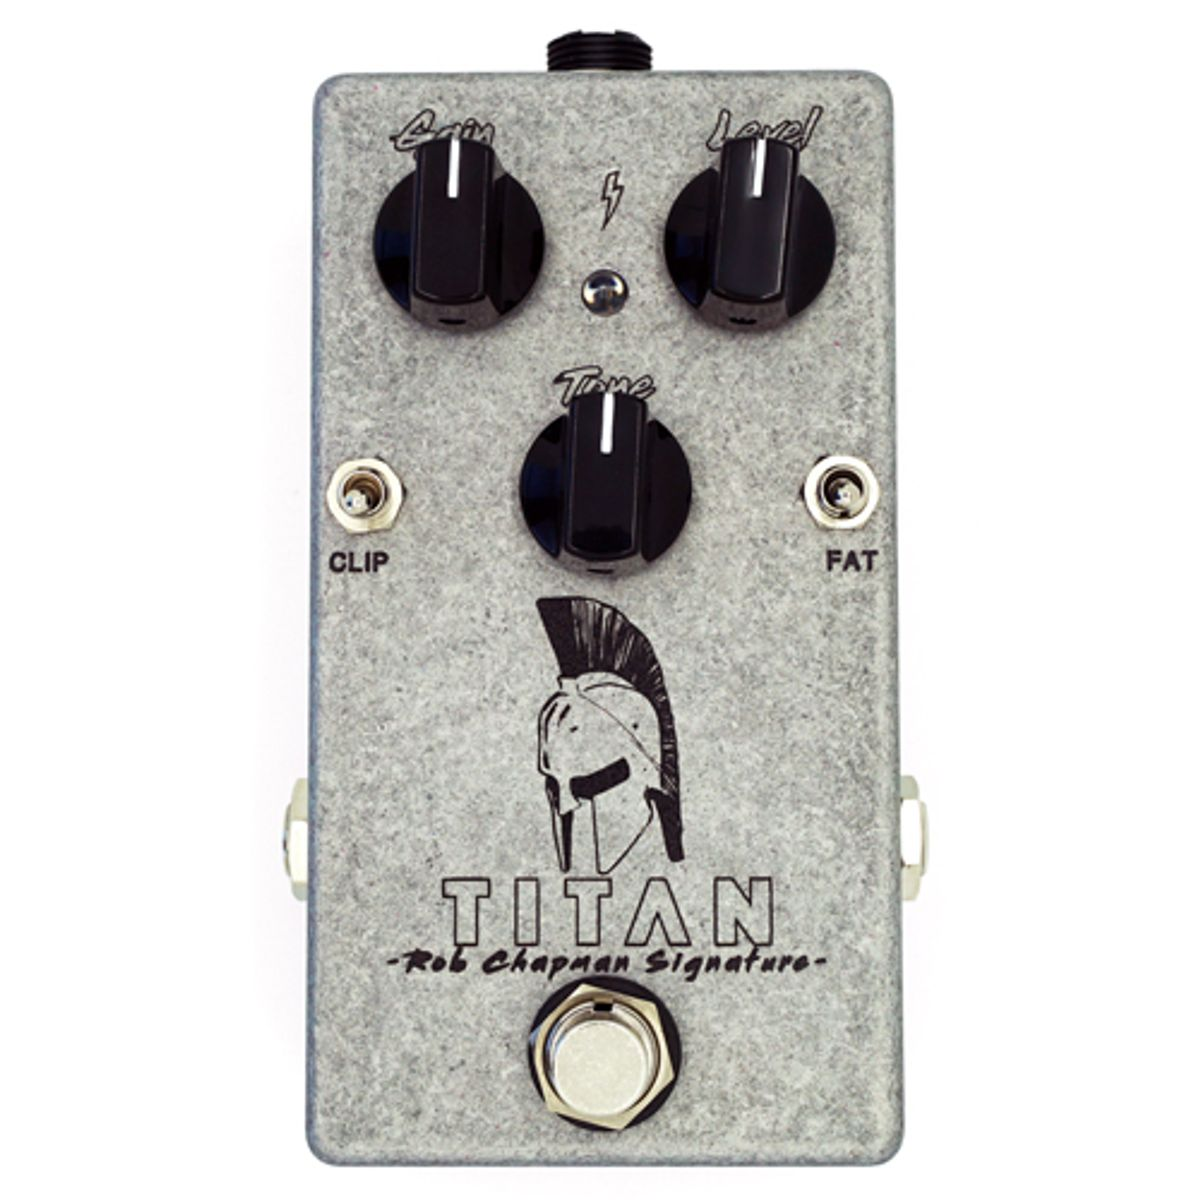 Mythos Pedals Launches the Rob Chapman Signature Titan Overdrive